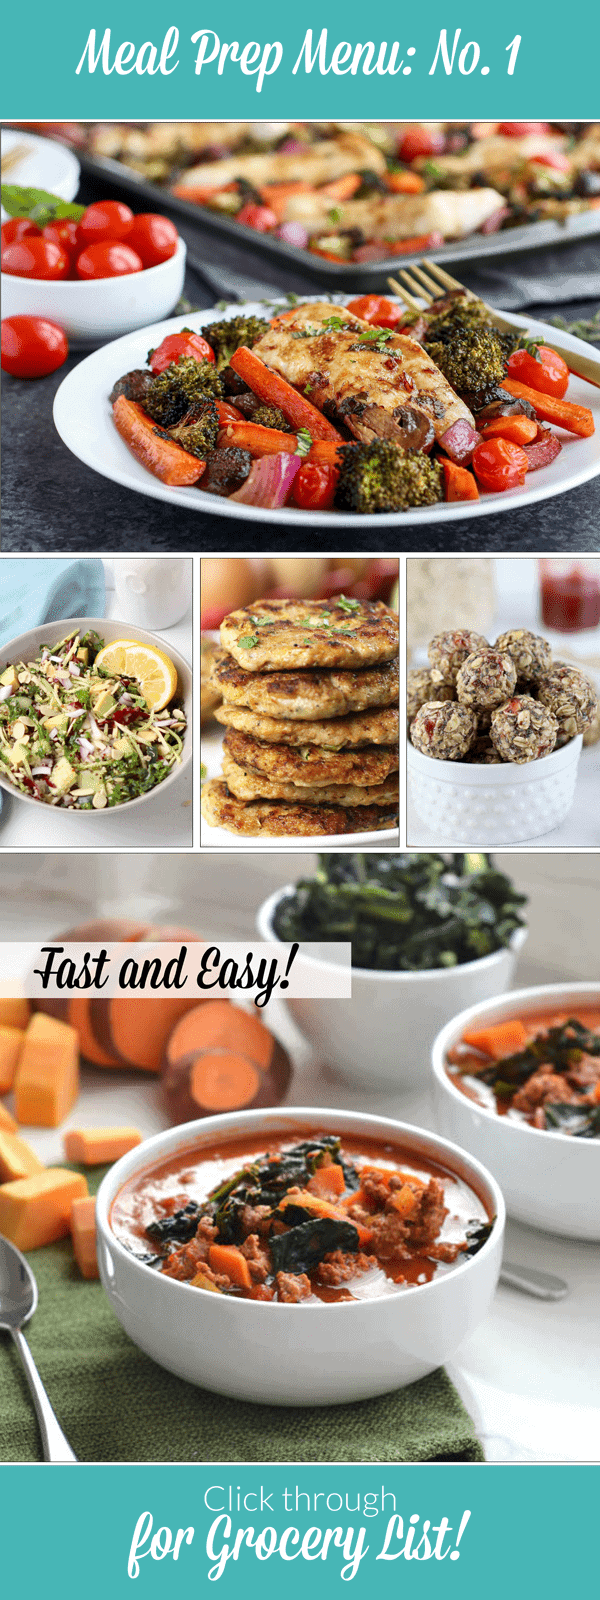 Weekly Meal Prep Menu: No. 1 featuring 5 fast and easy recipes you can make on the weekend. Gluten-free | Dairy-free | Family-friendly The Real Food Dietitians | http://therealfoodrds.com/weekly-meal-prep-menu-no-1/